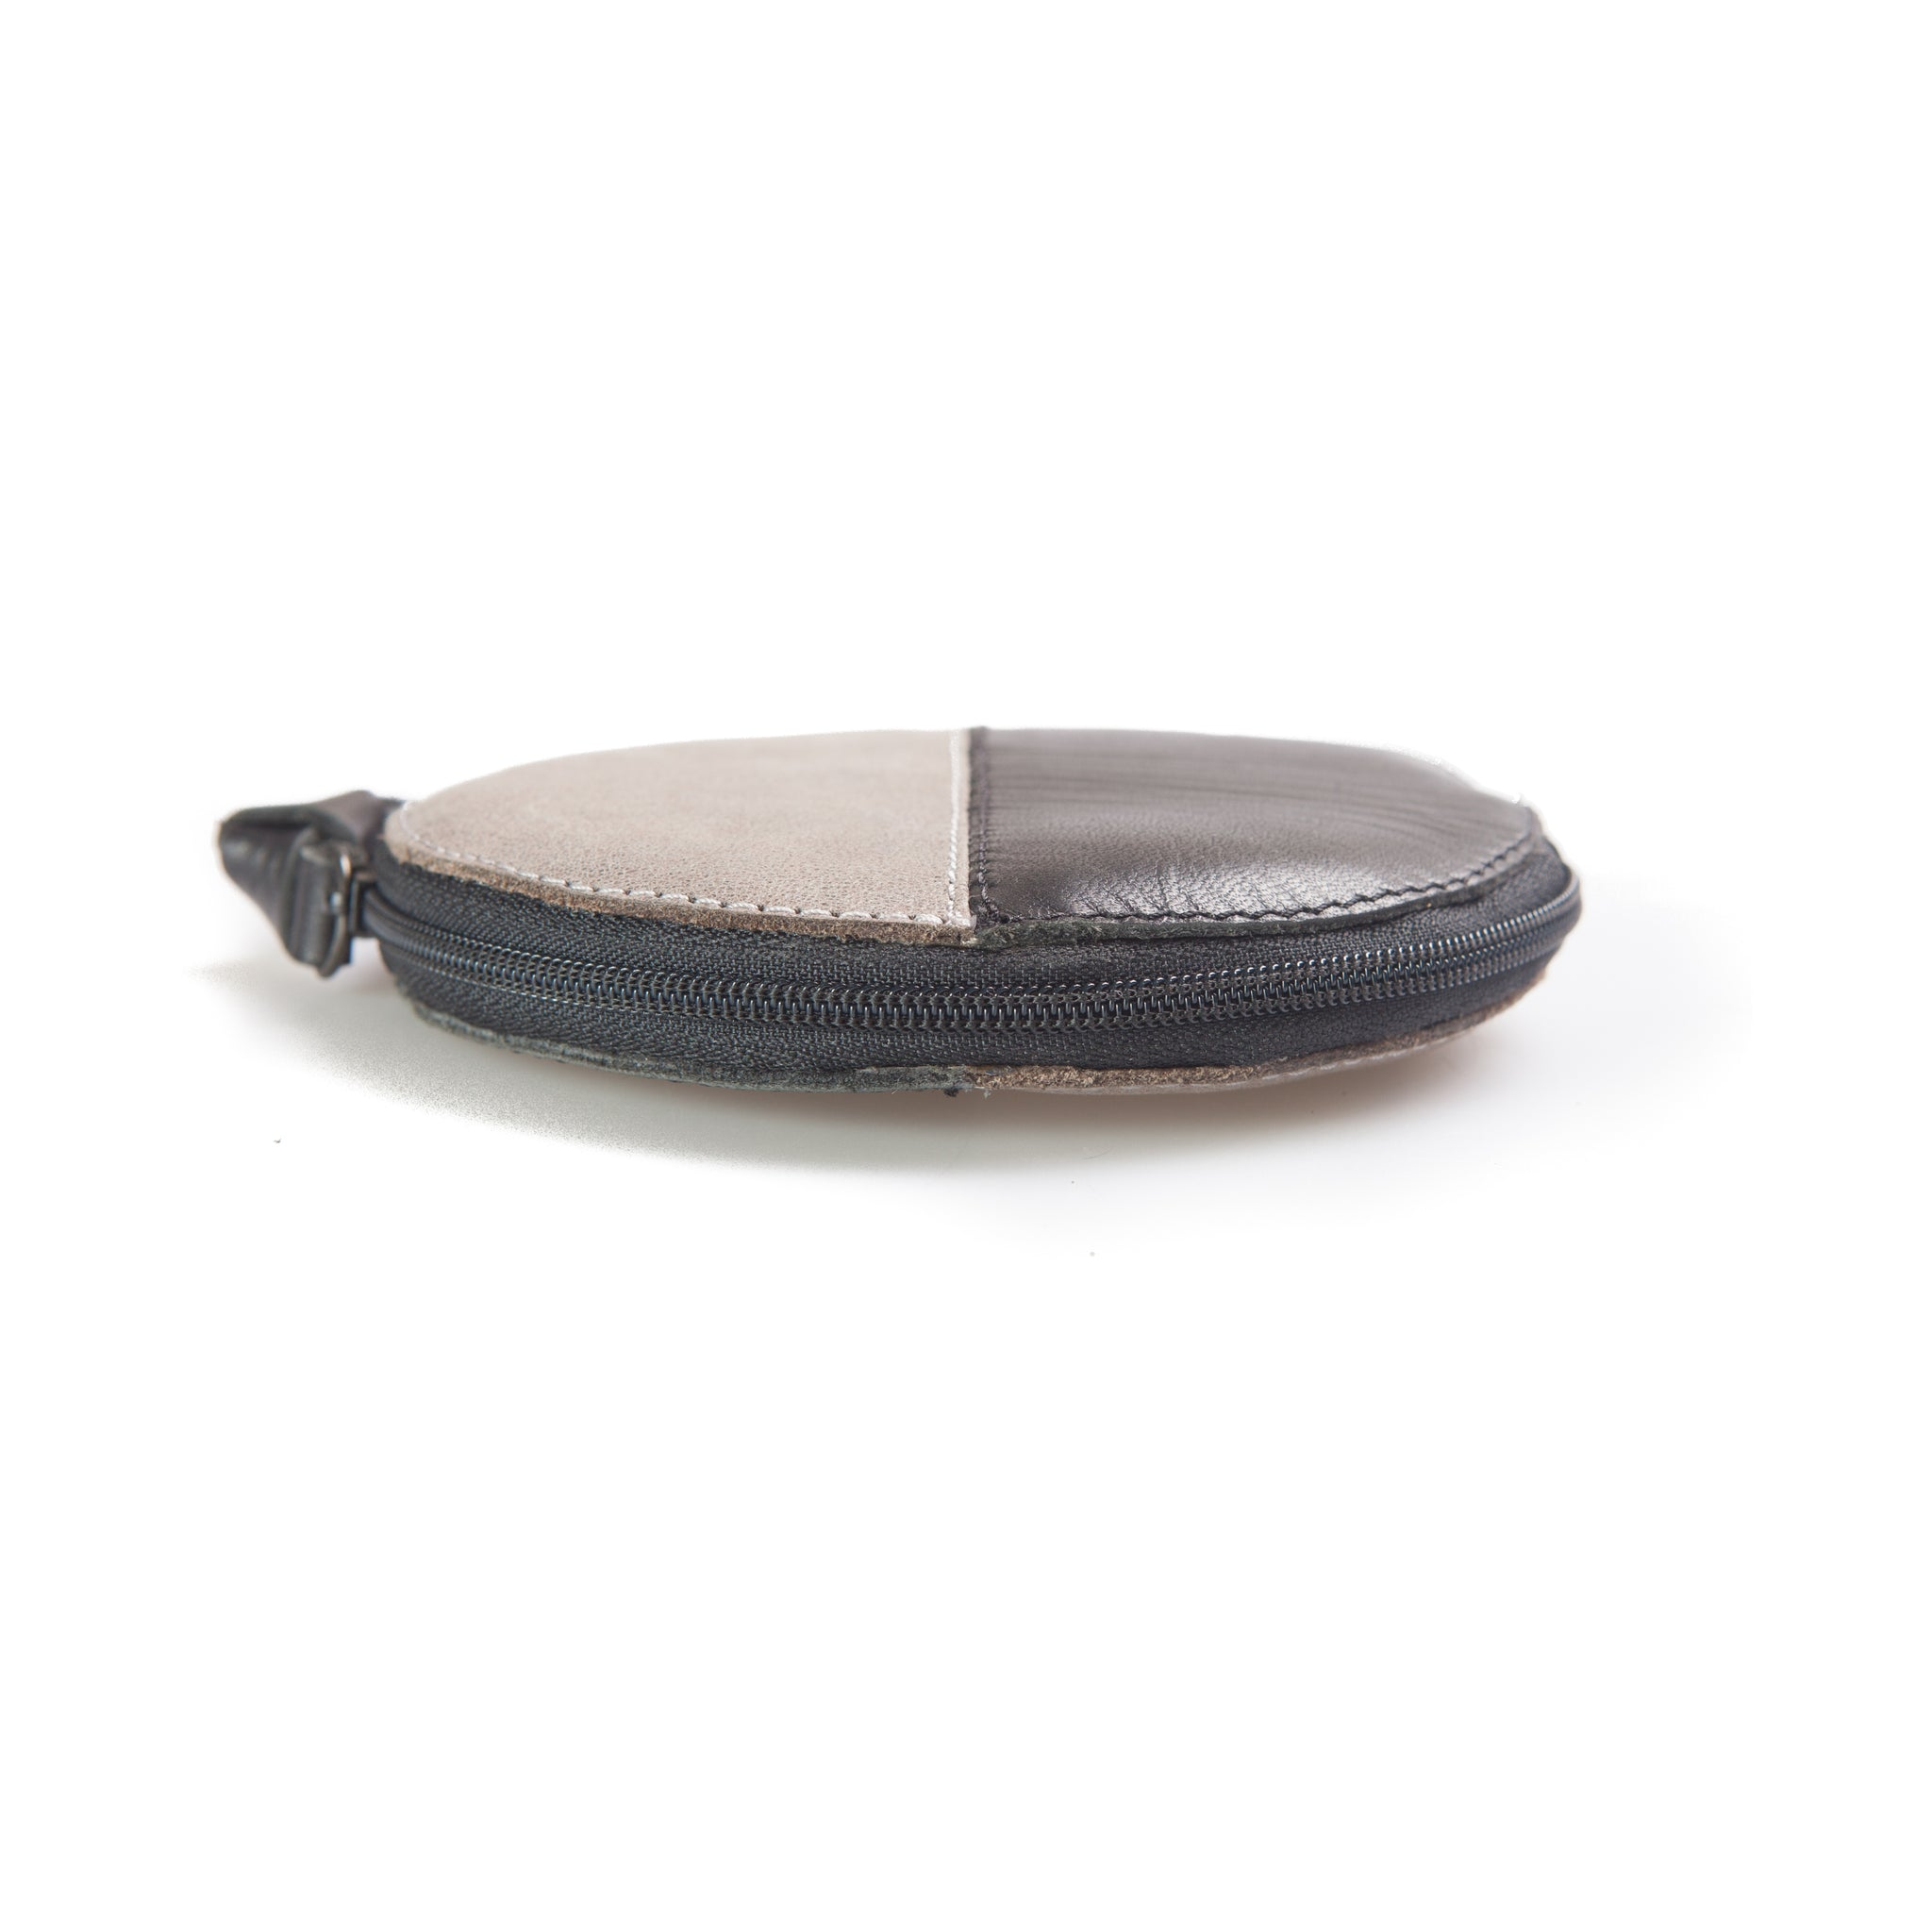 First of June, Purnama coin purse, vegetable tanned leather bags and wallets, designed in Bali, handmade in Yogyakarta